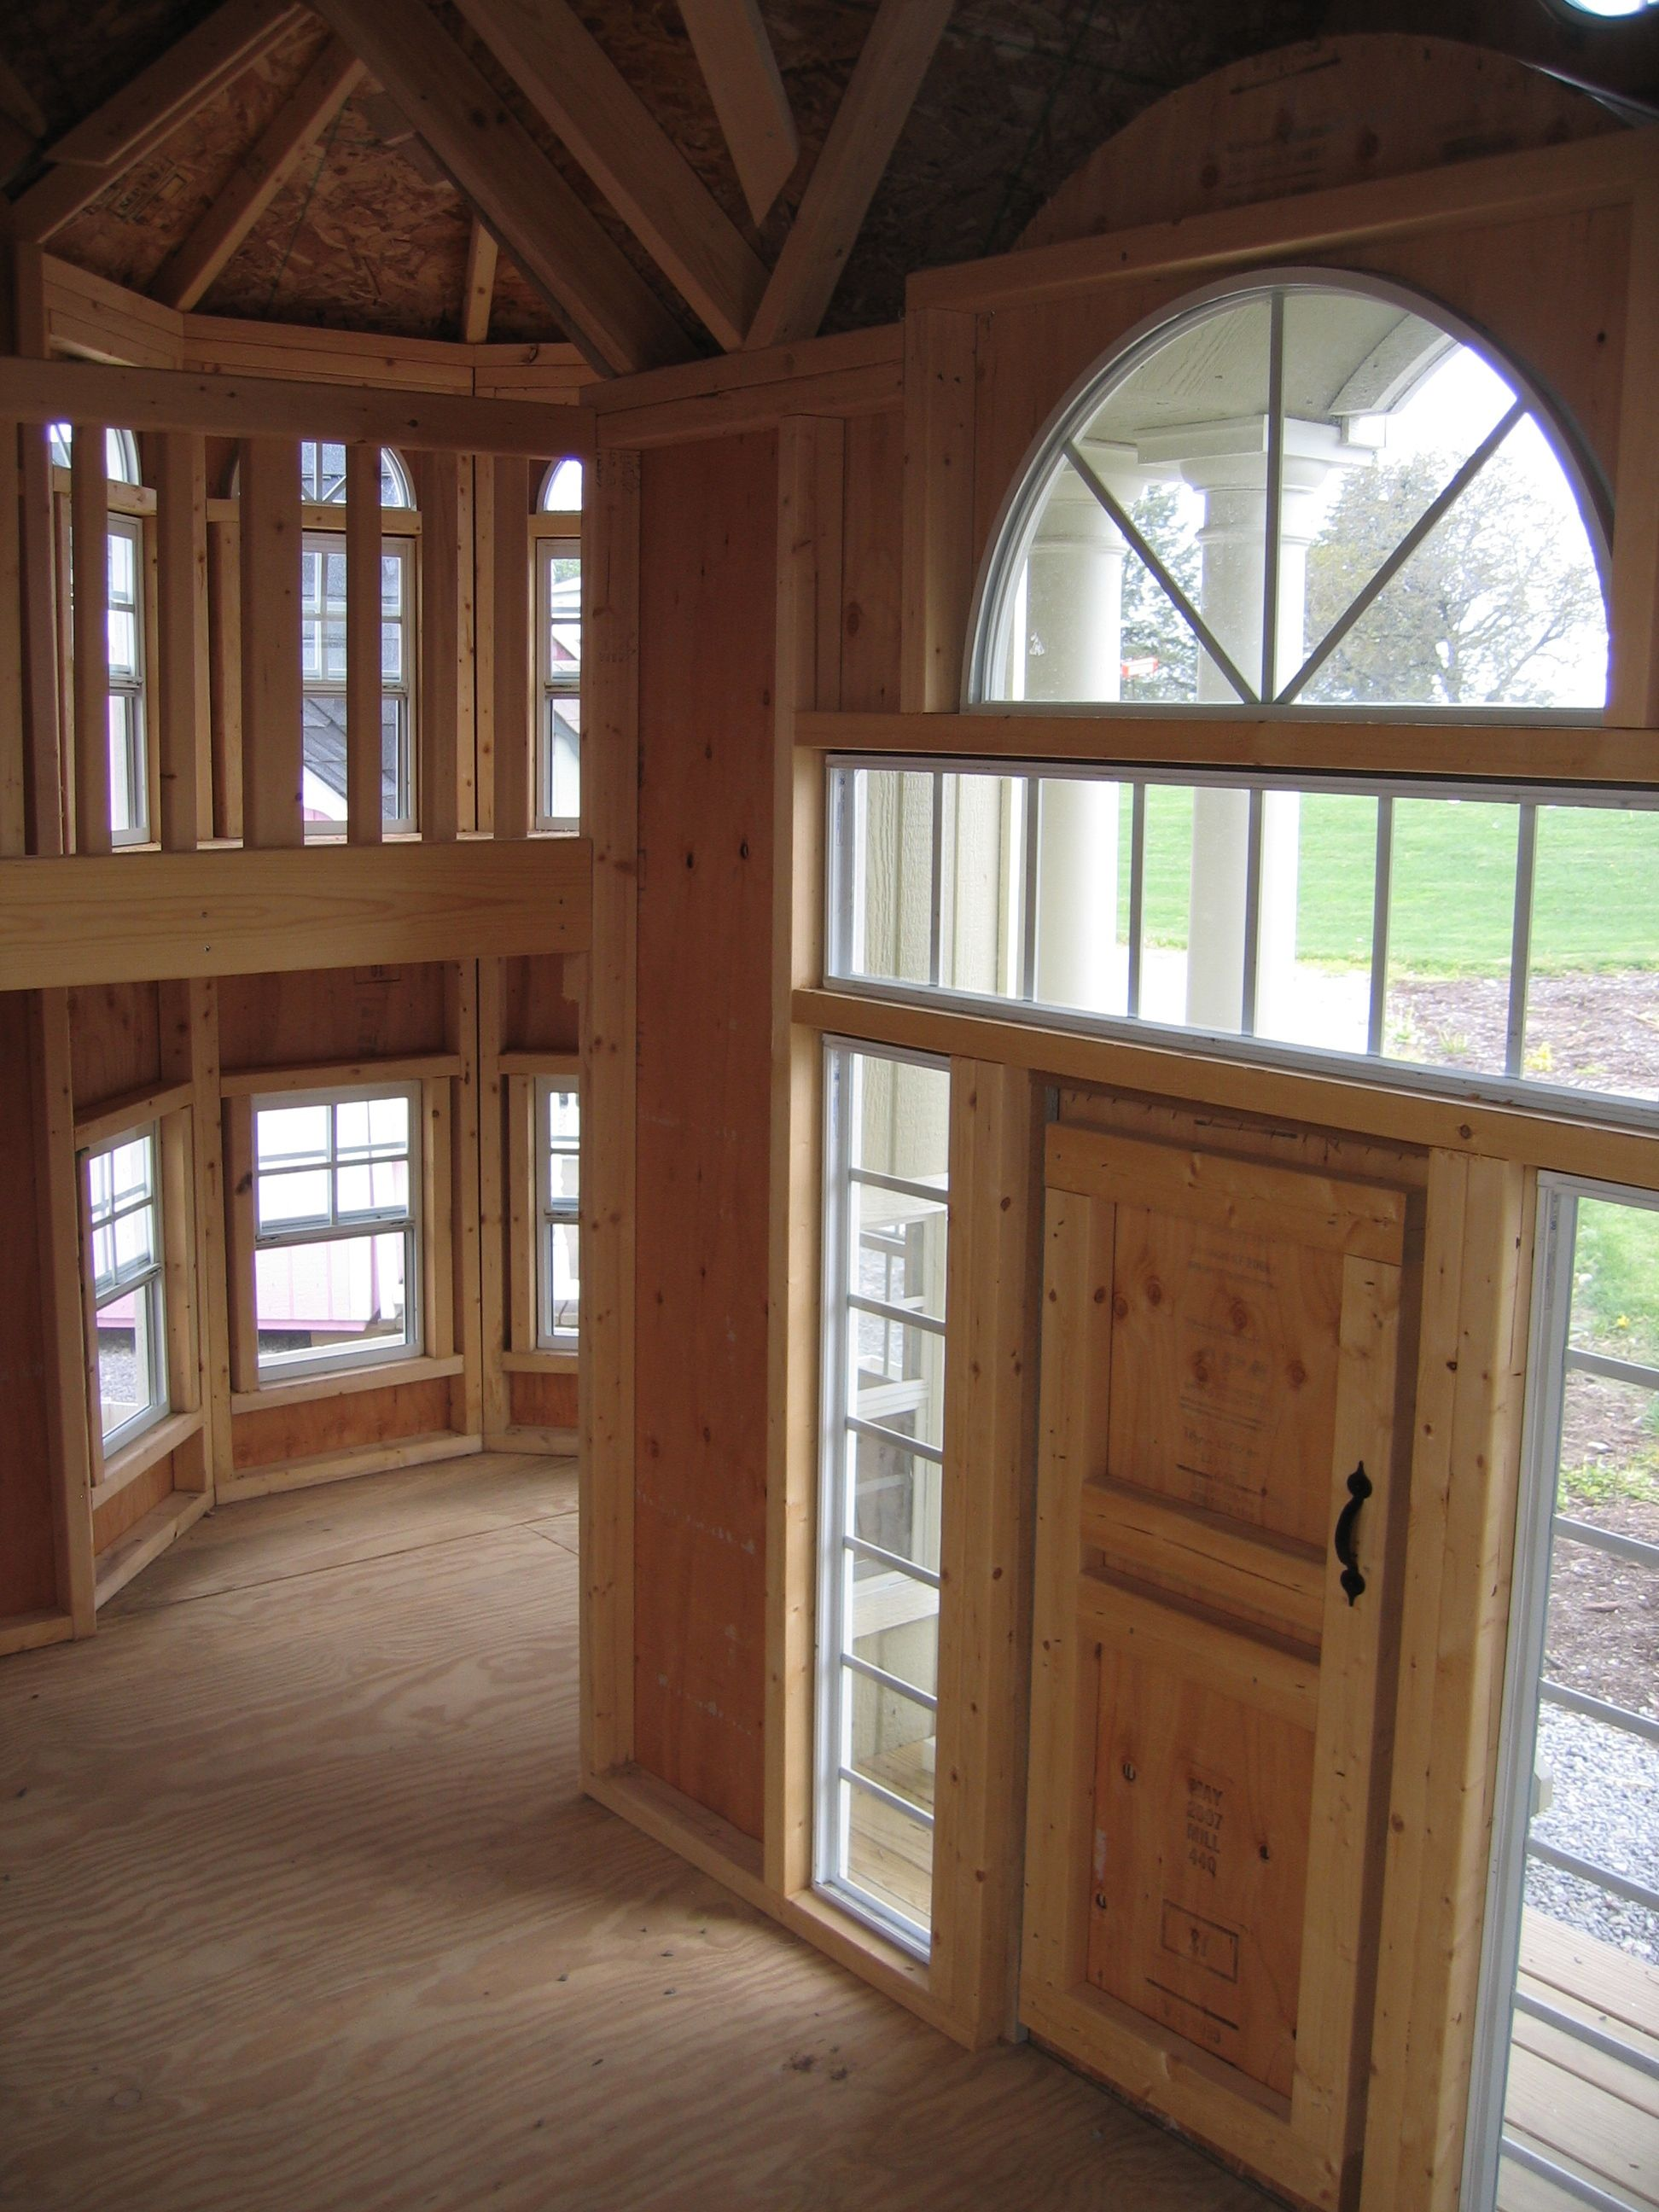 Playhouse grand portico mansion luxury playhouse for Playhouse ideas inside